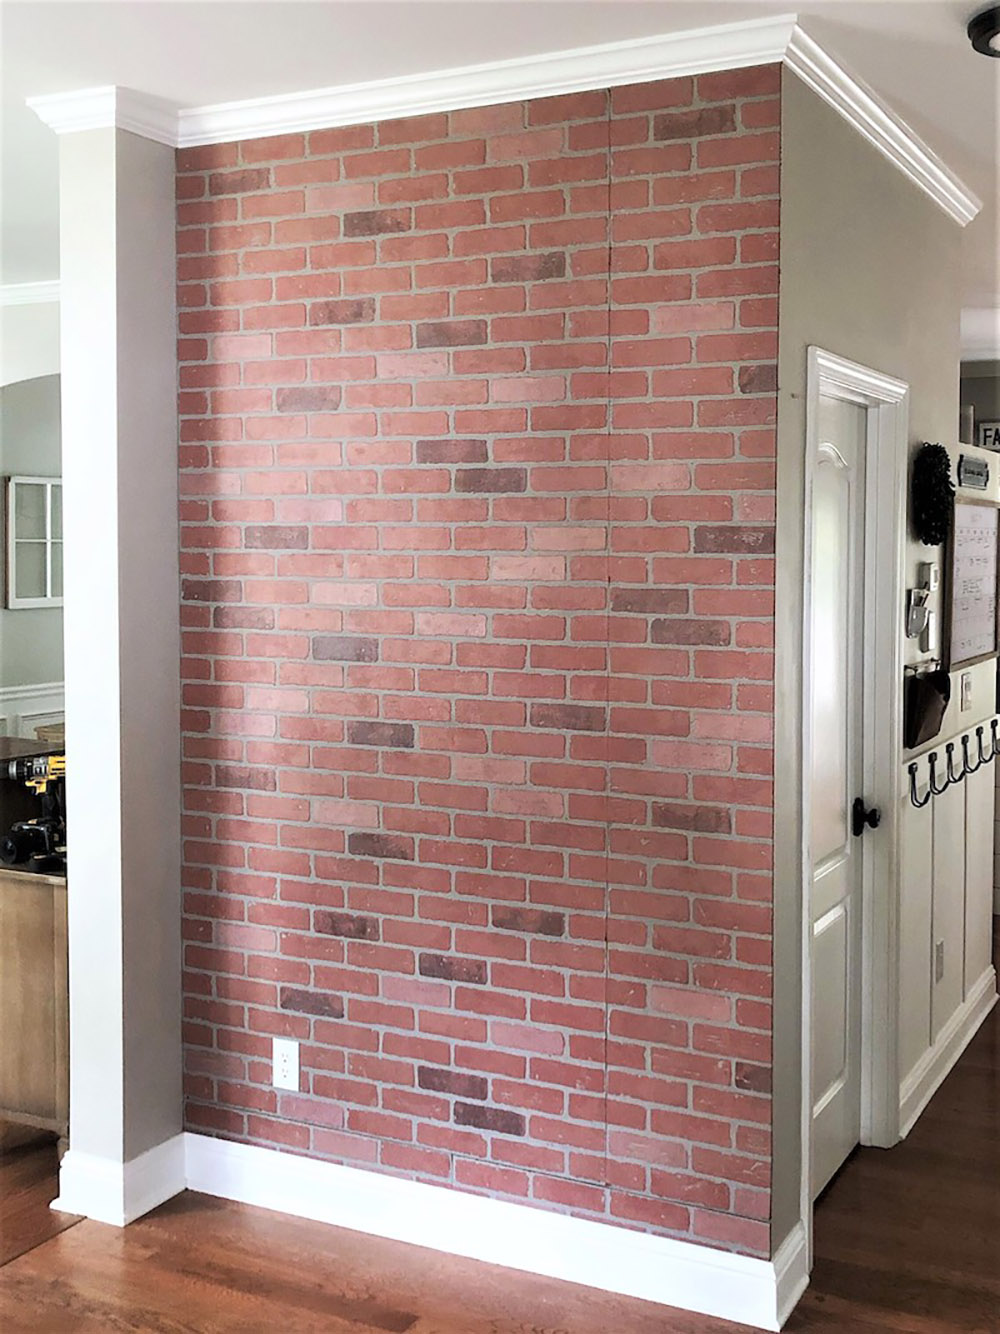 A faux brick accent wall.